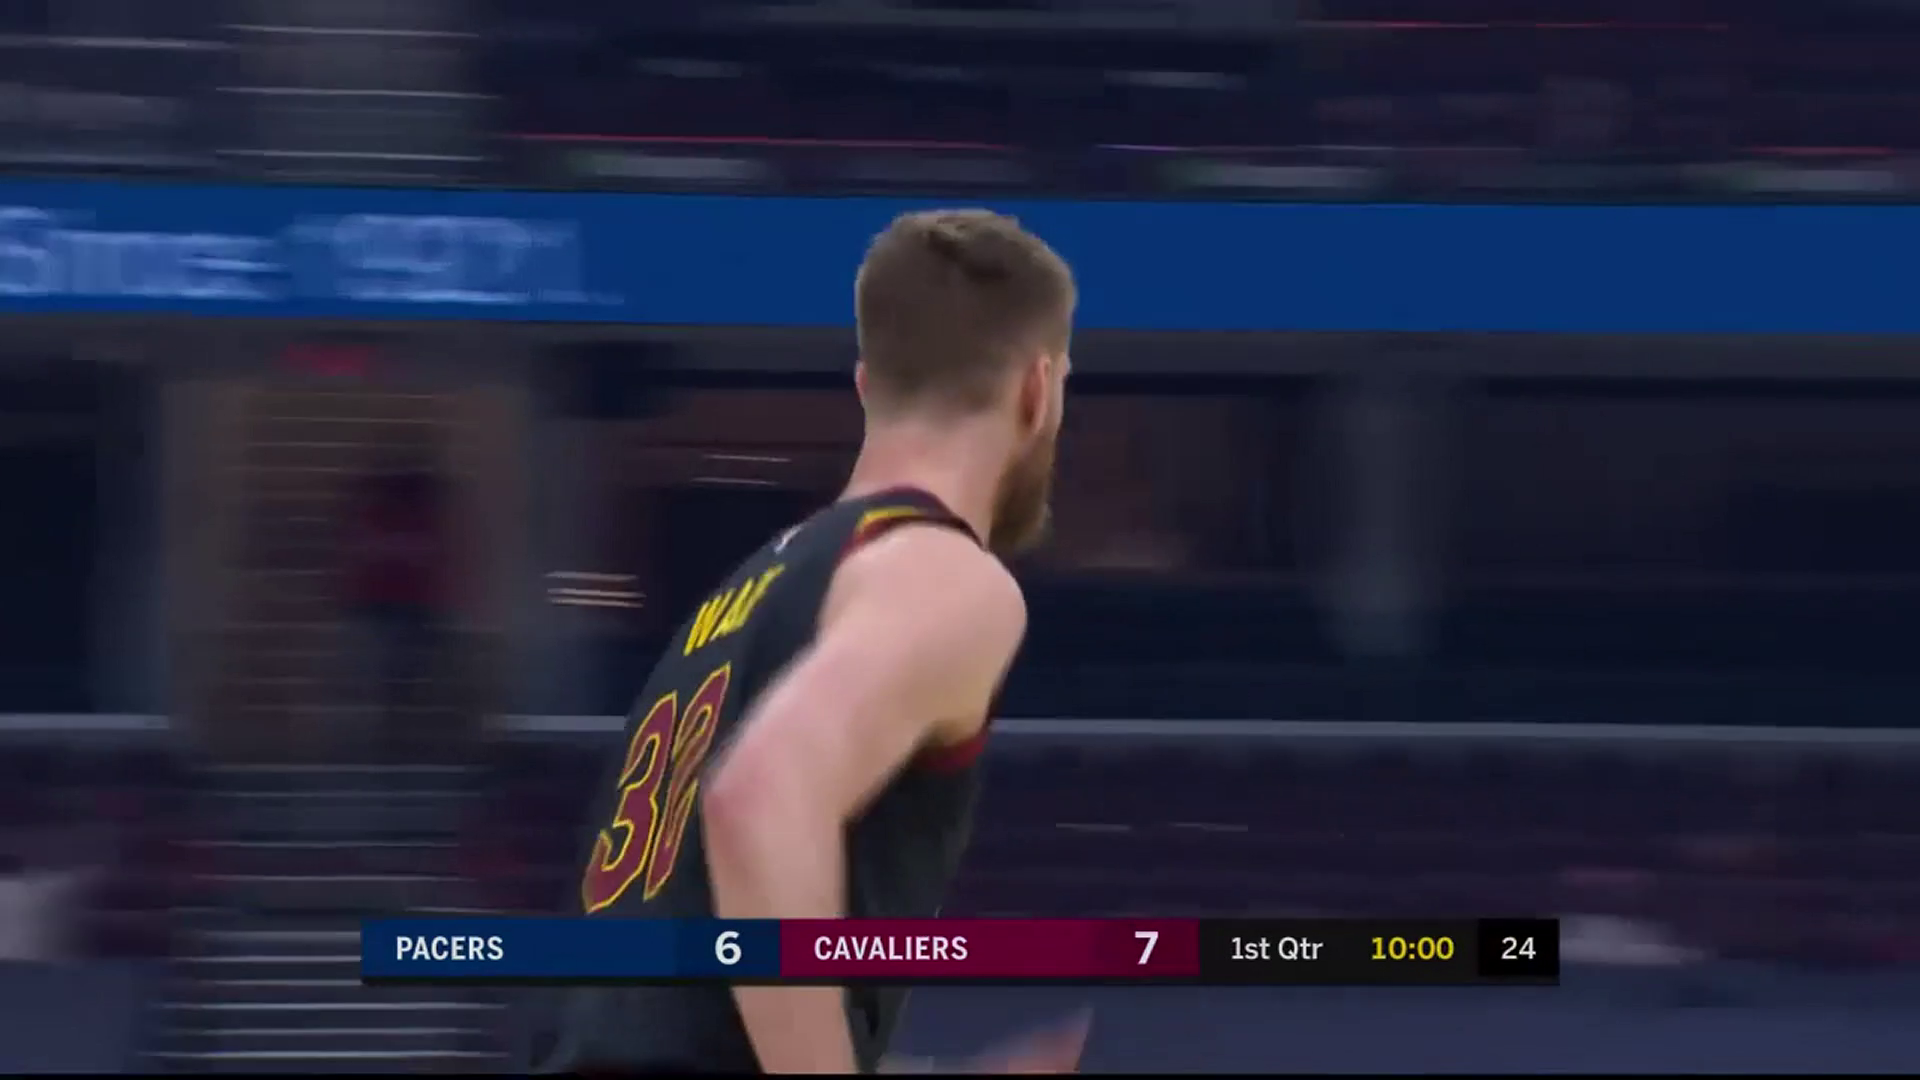 Wade with a Pair of Early Triples